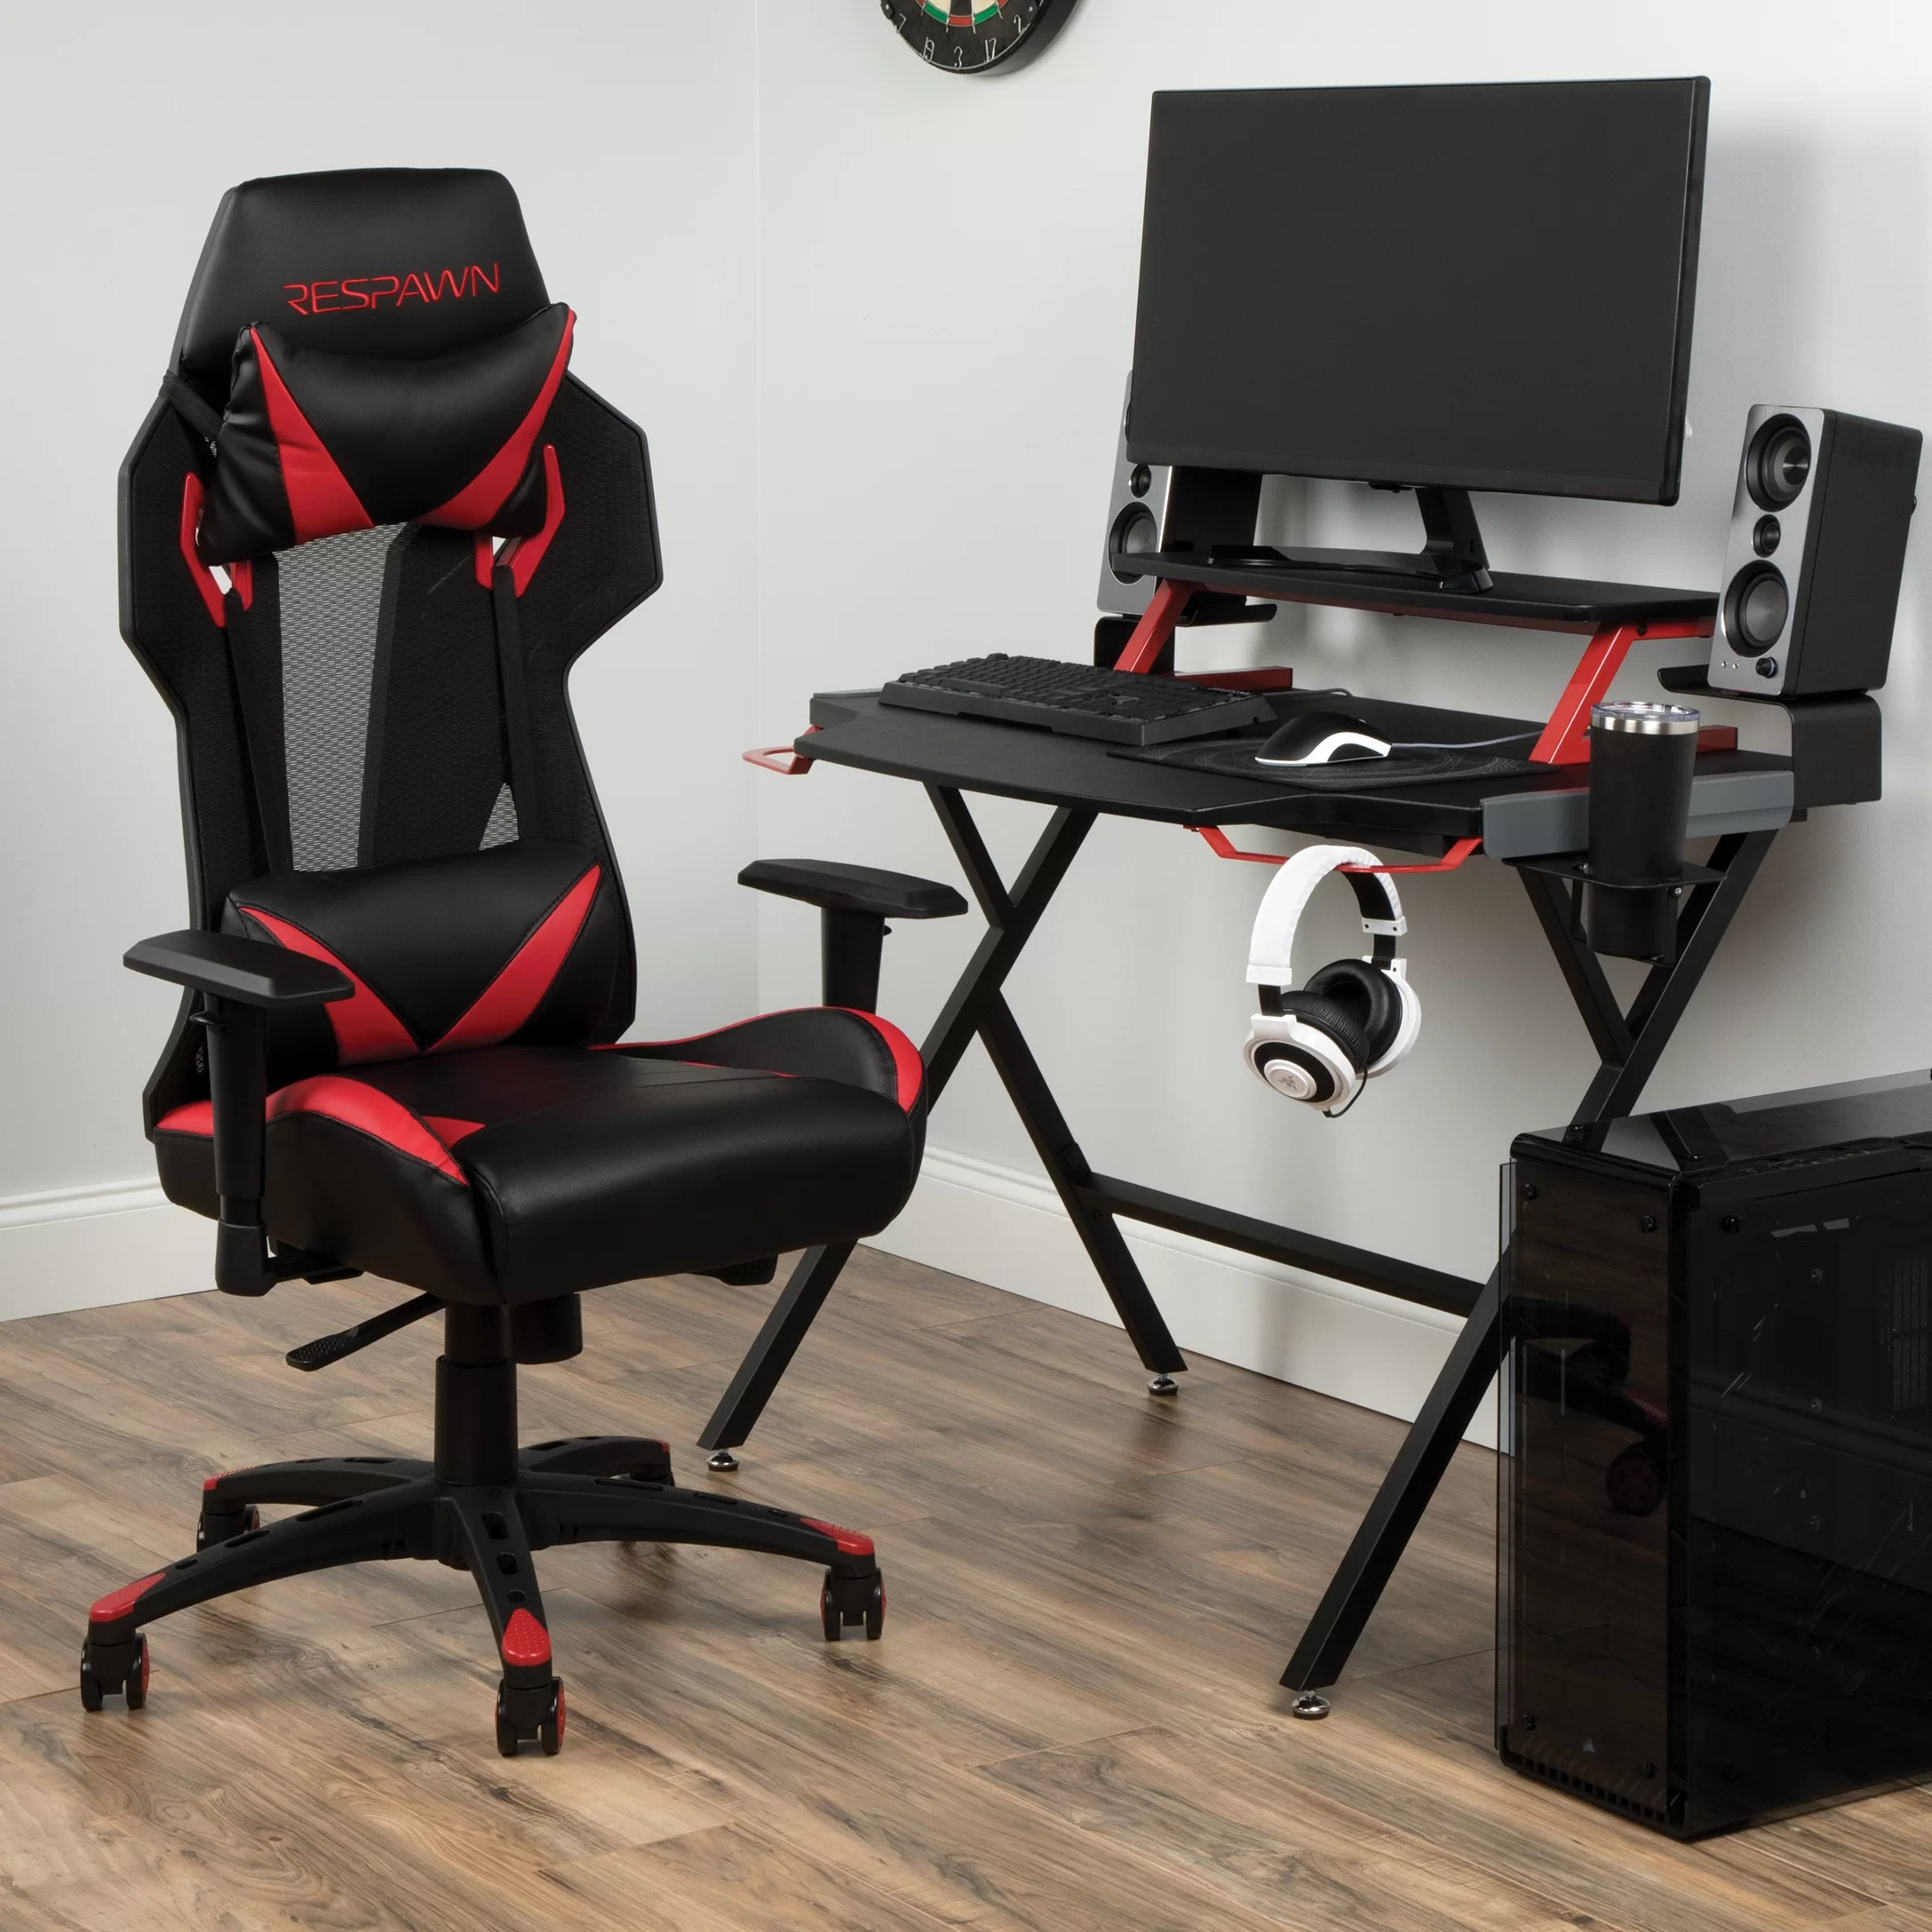 Will Chair Gaming Desk And Chair Set